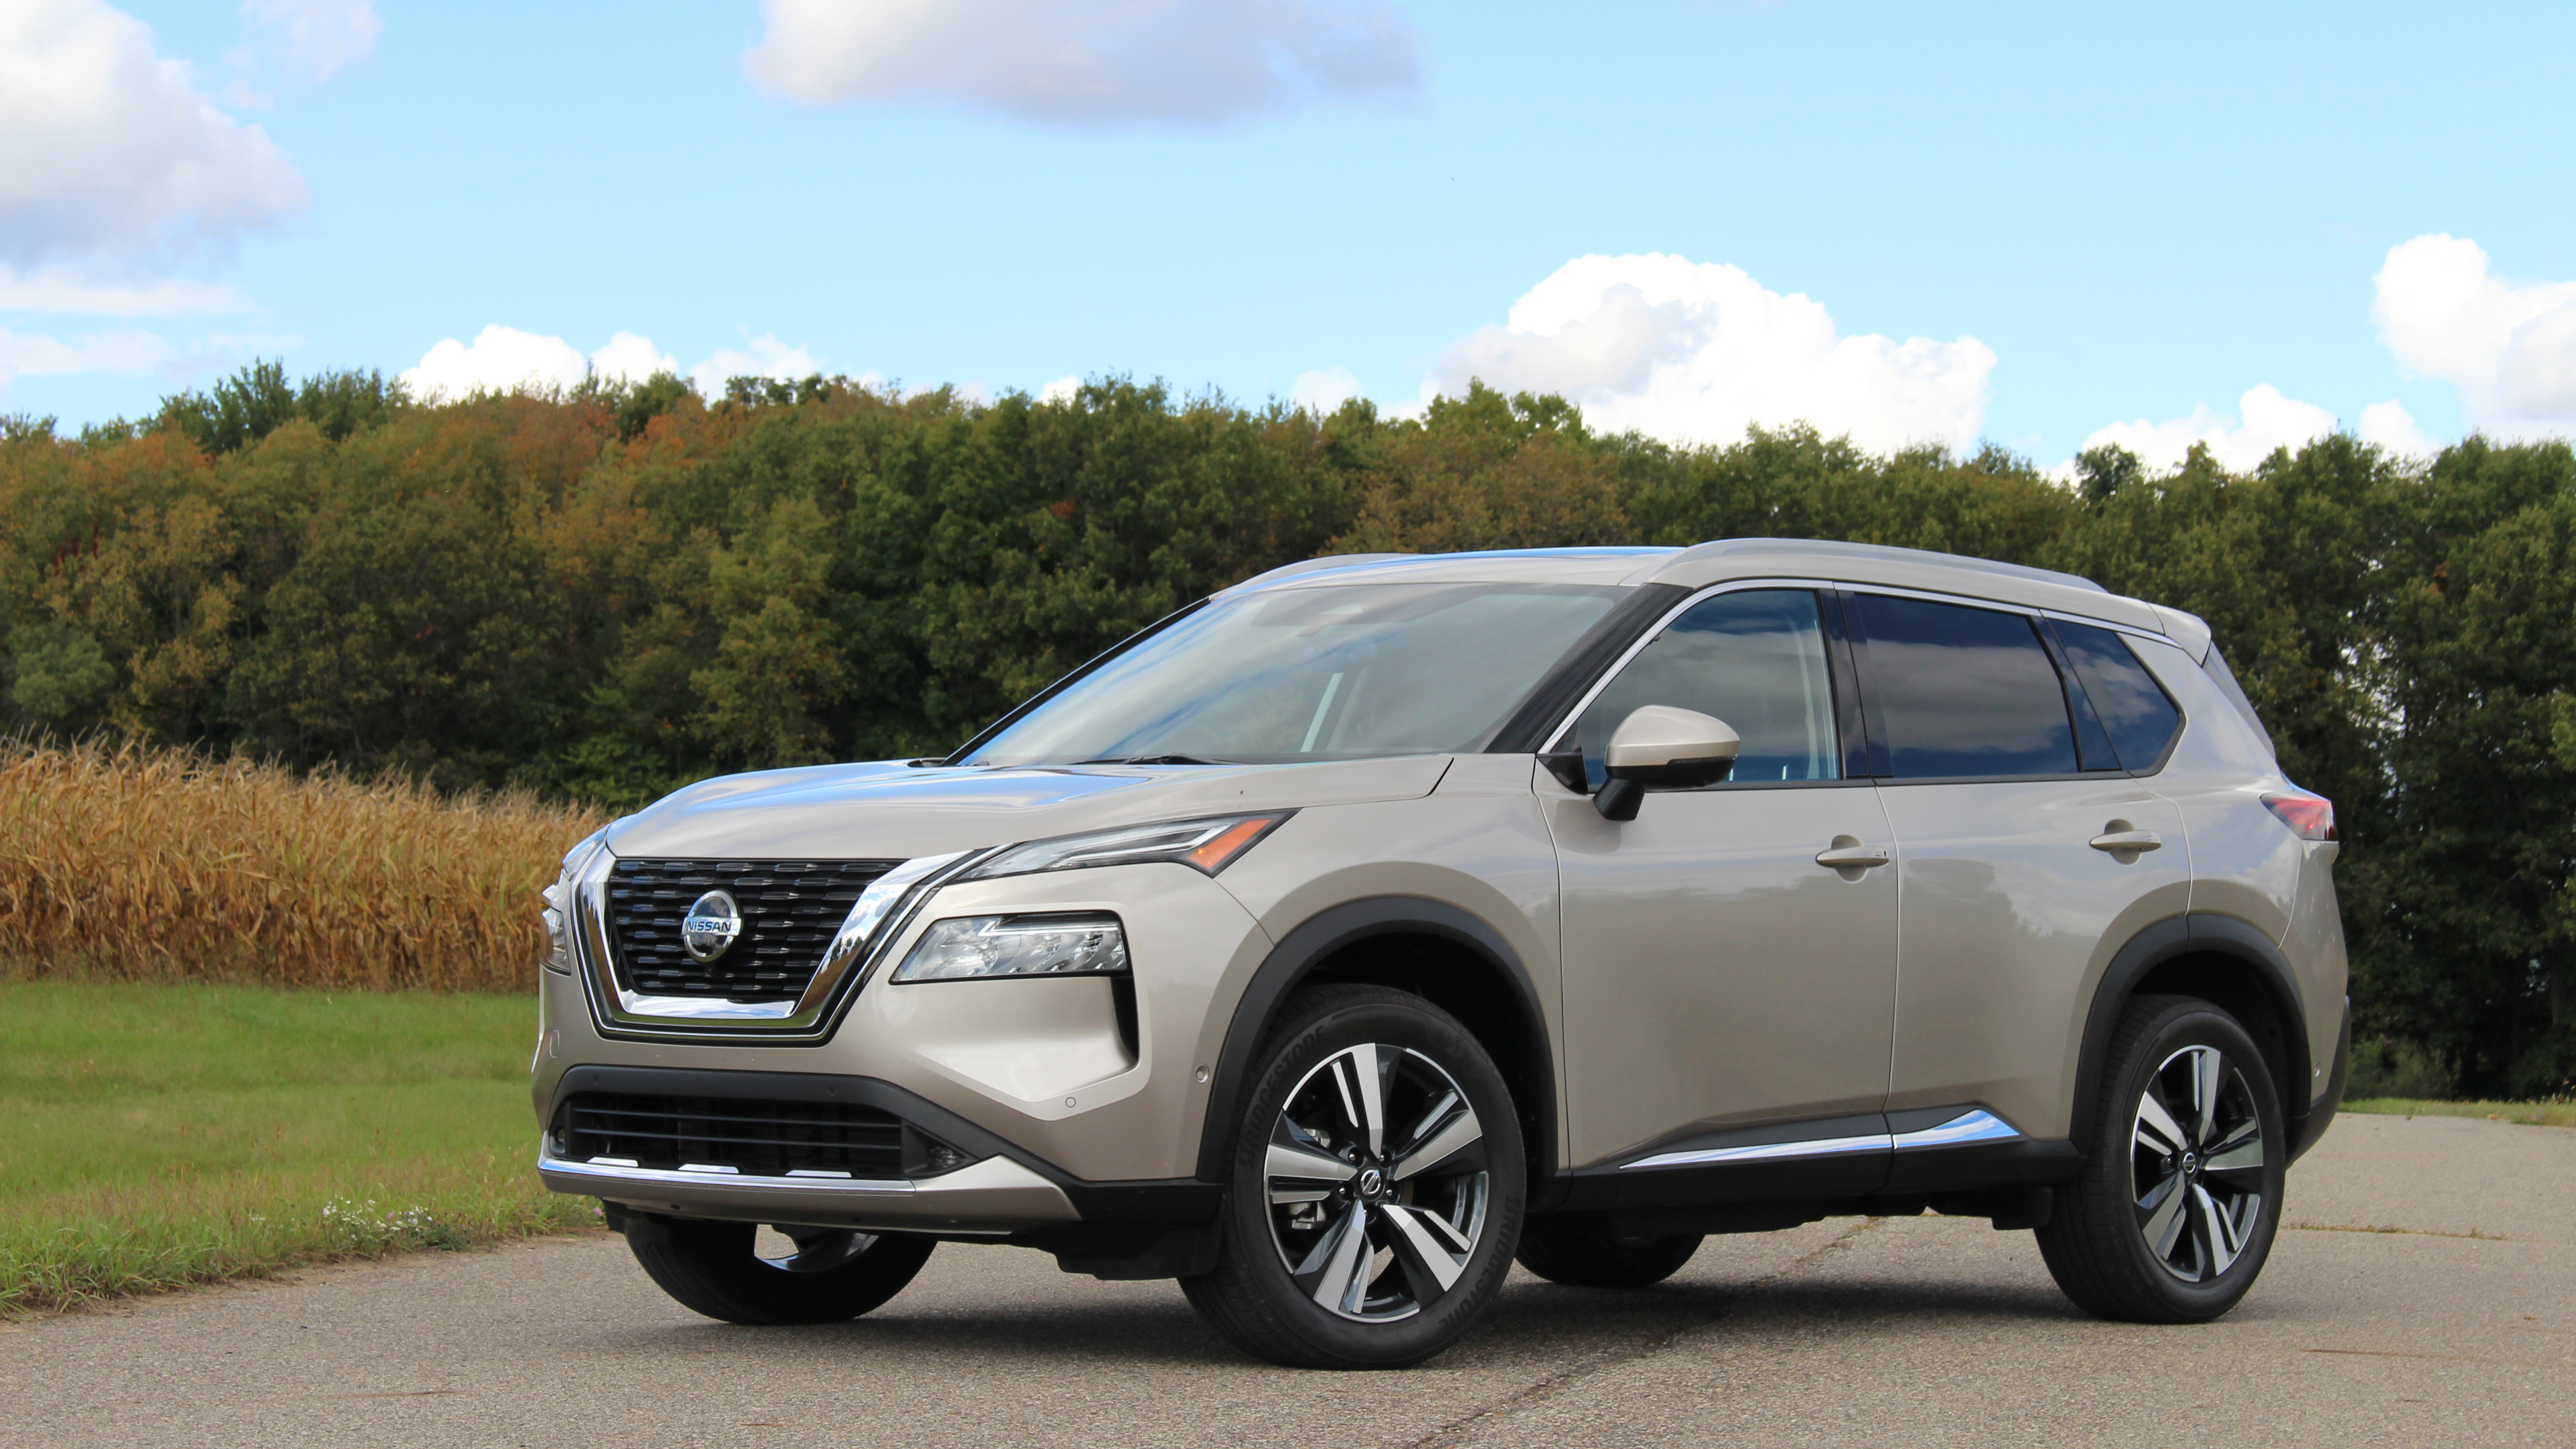 2021 nissan rogue review   prices, specs, features and